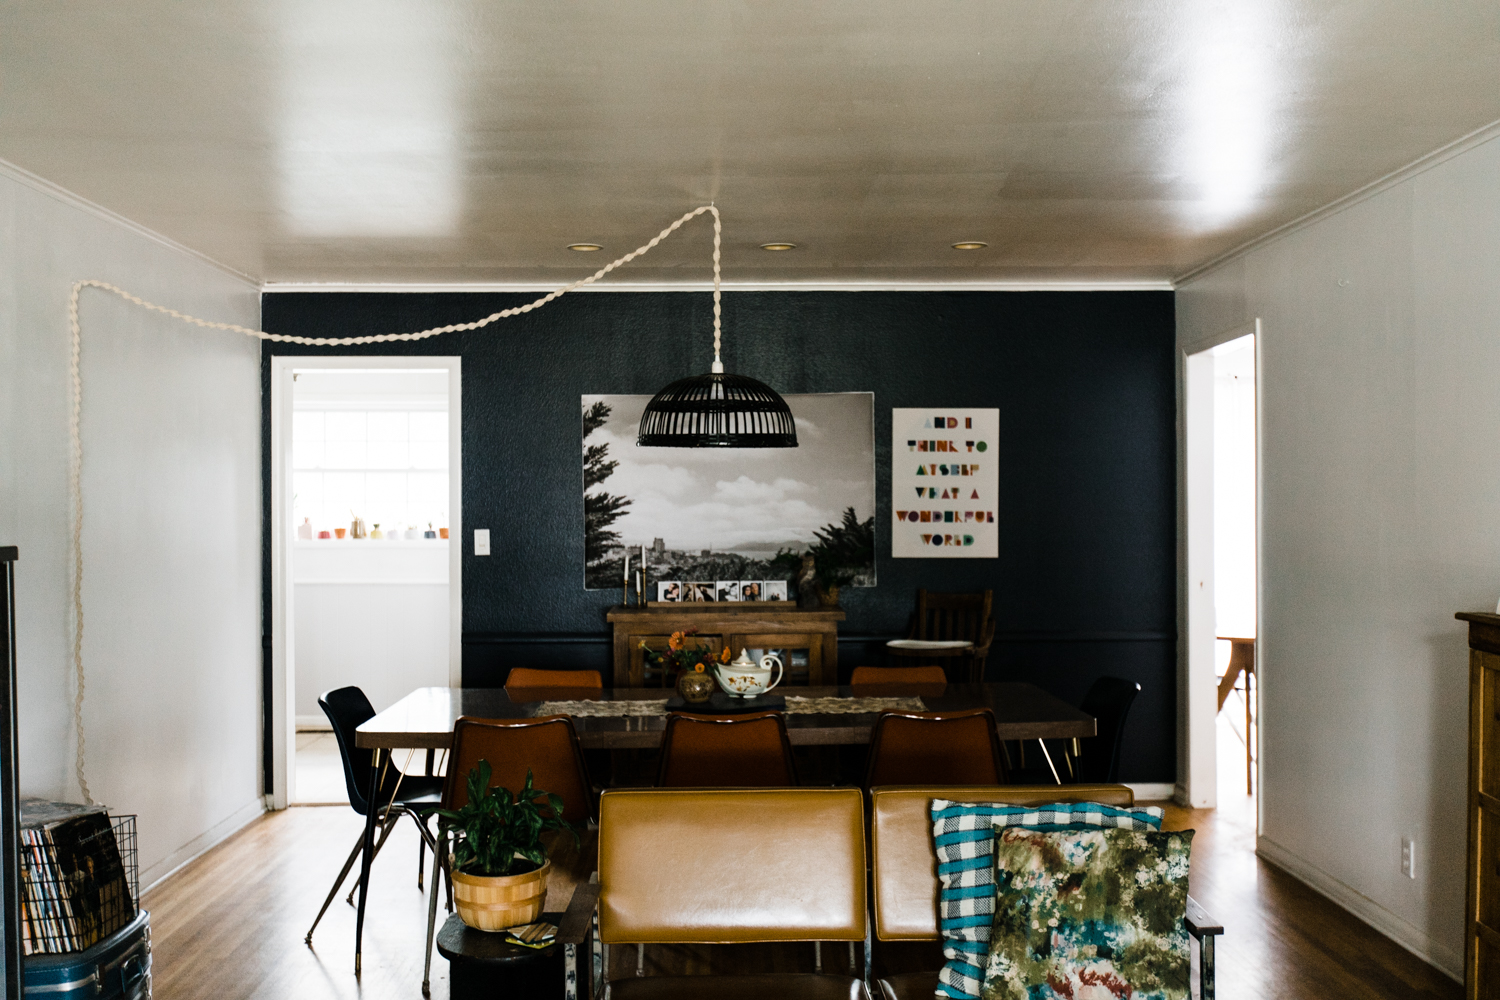 Abbey-Wells-Home-eclectic-colorful-home-WEB-89.jpg